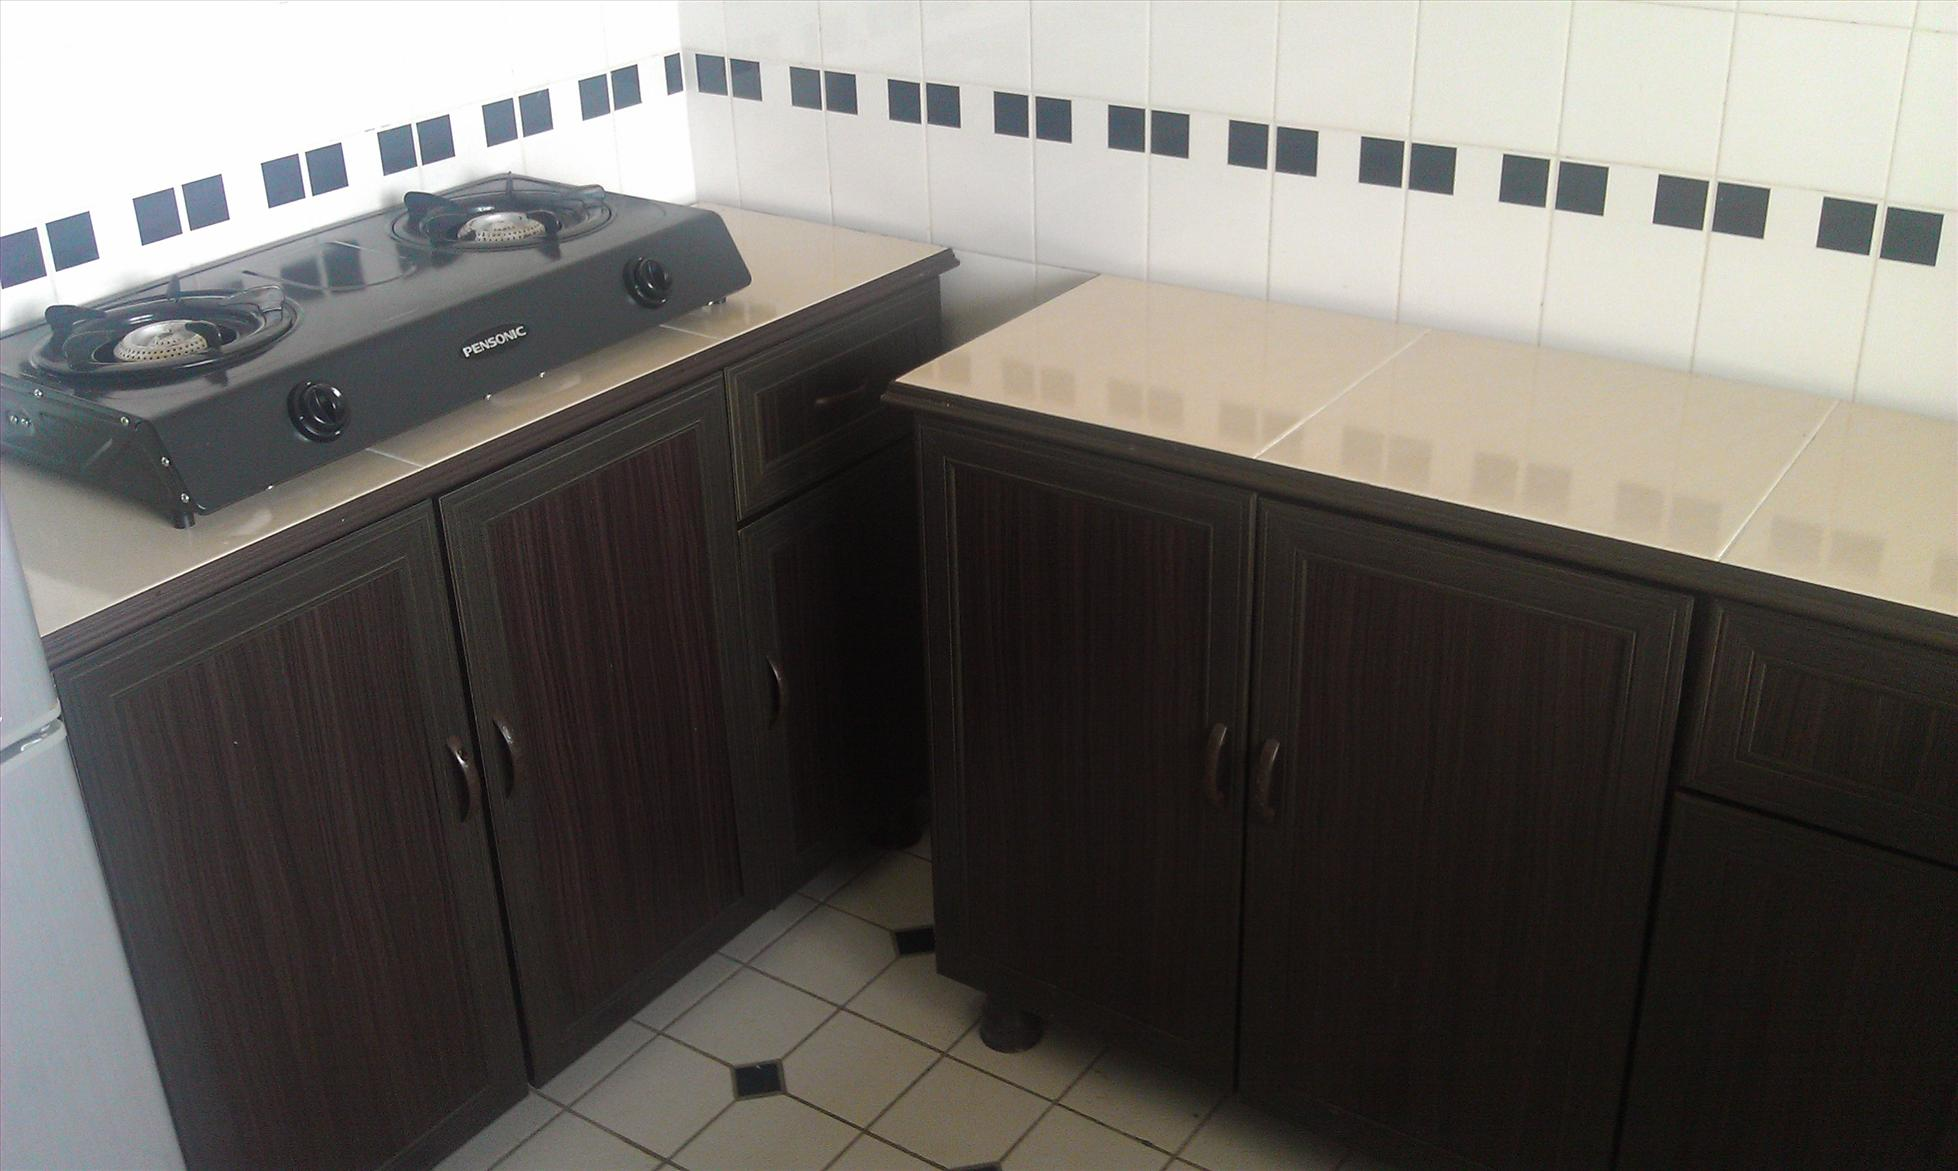 Kitchen cabinet + Kabinet Dapur + Cooker 2 burner for sale